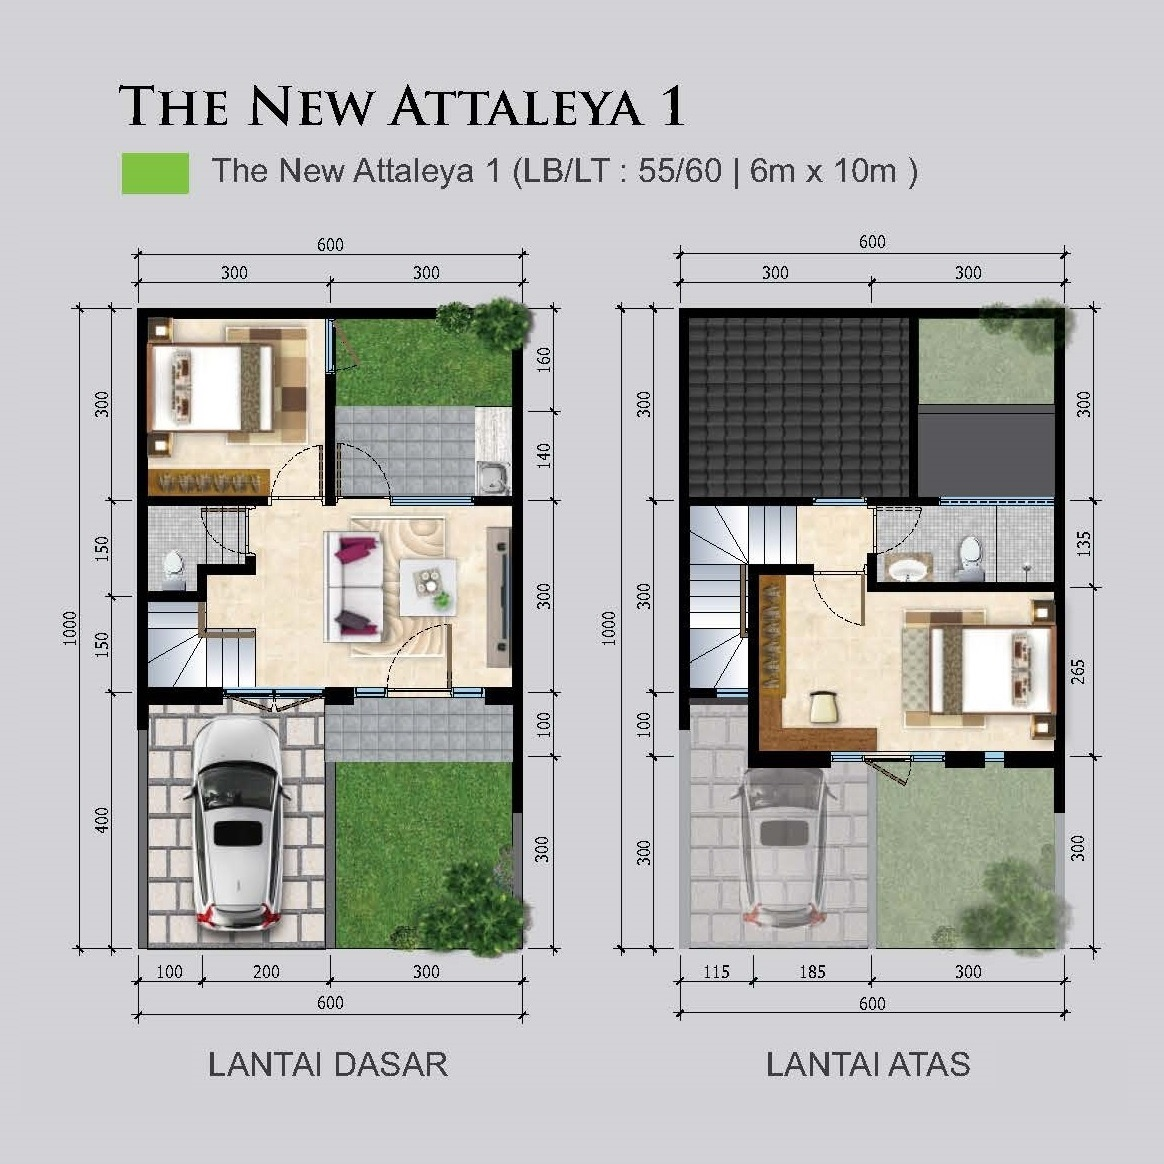 Denah new Attaleya 1 56-60